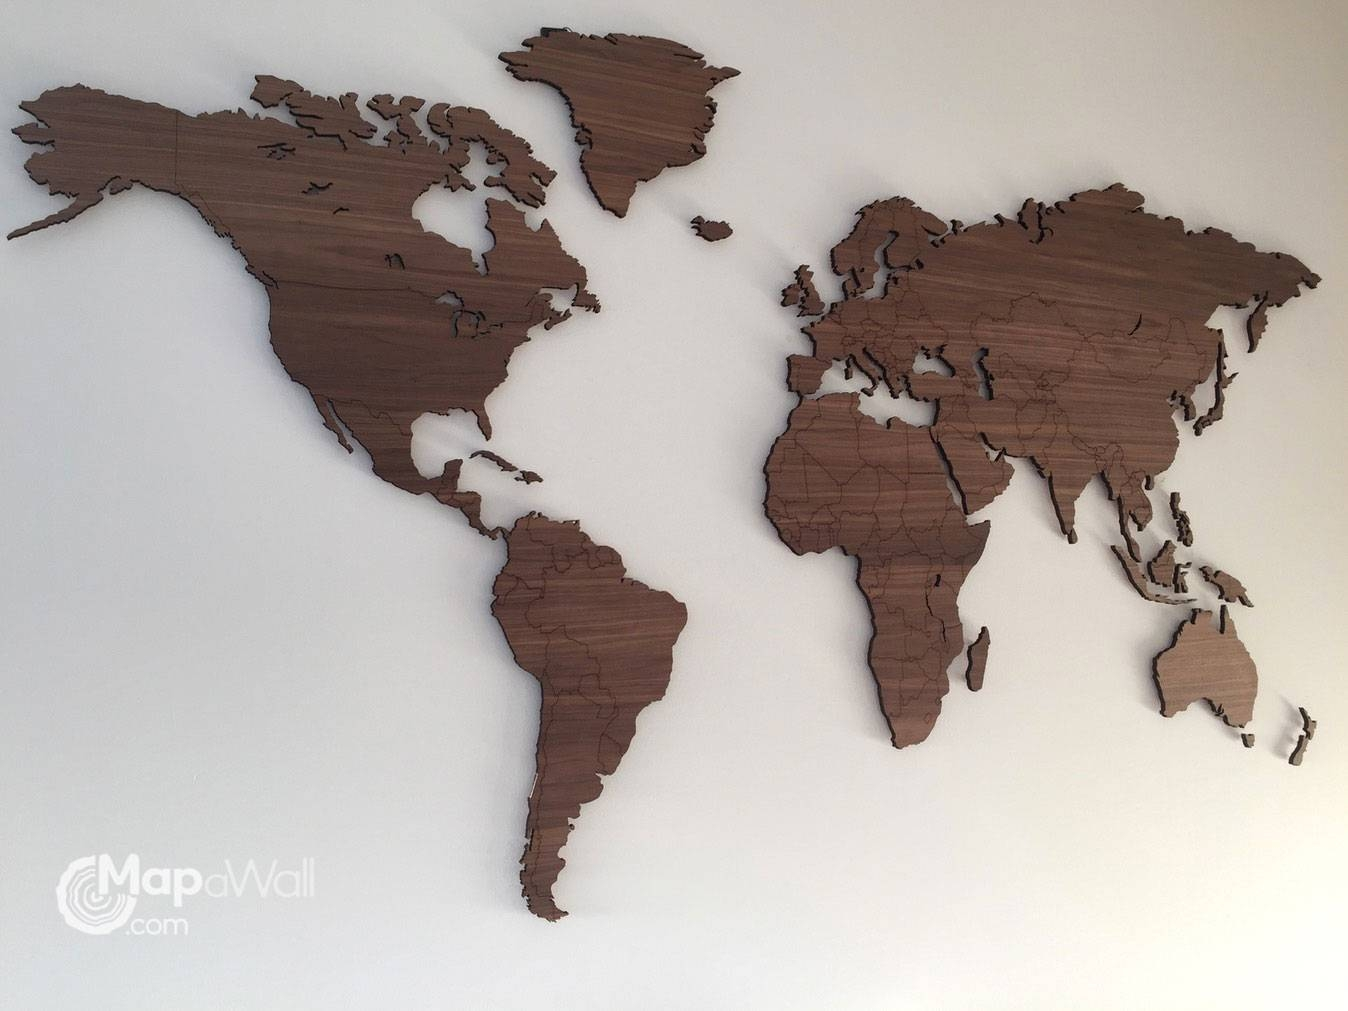 Gallery of world map wood wall art view 17 of 20 photos 50 wooden world map wall art top 10 wonderful diy wood art and throughout current world gumiabroncs Images